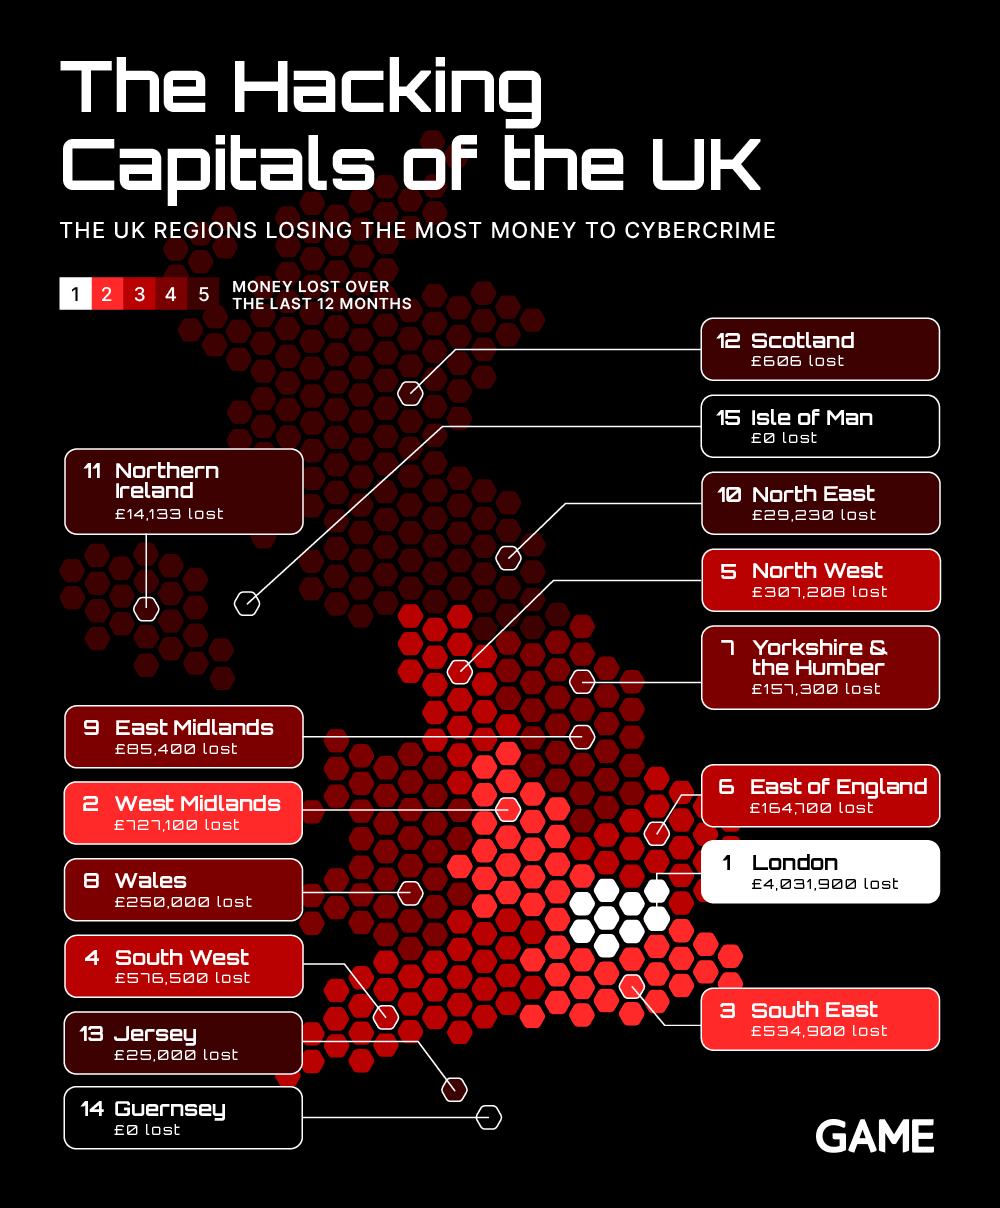 The hacking Capitals of the UK